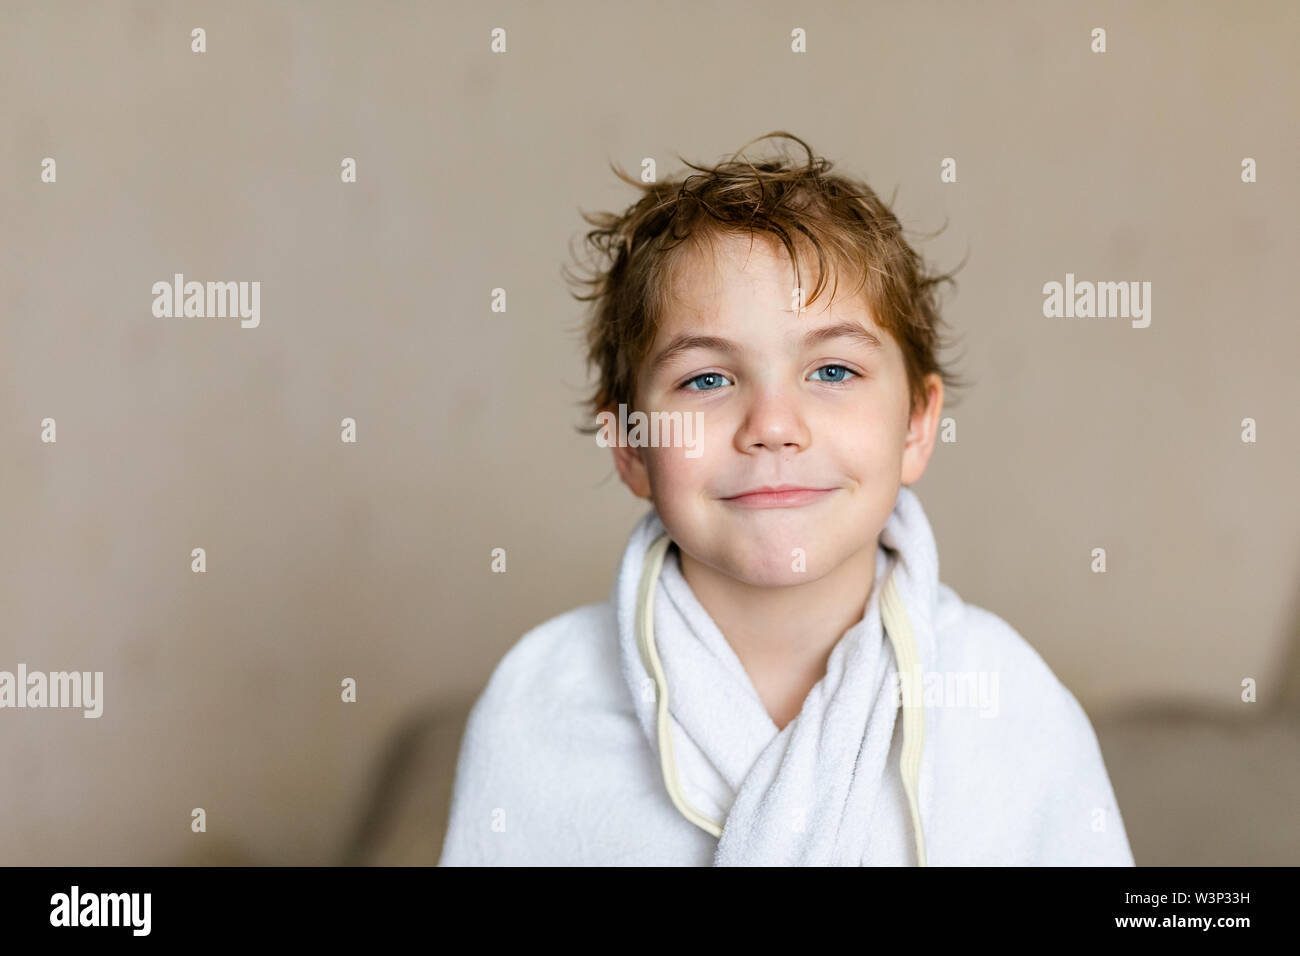 Blode caucasian boy after bath with wet hair and white towel on the head. Funny face, great smile, positive mood. - Stock Image